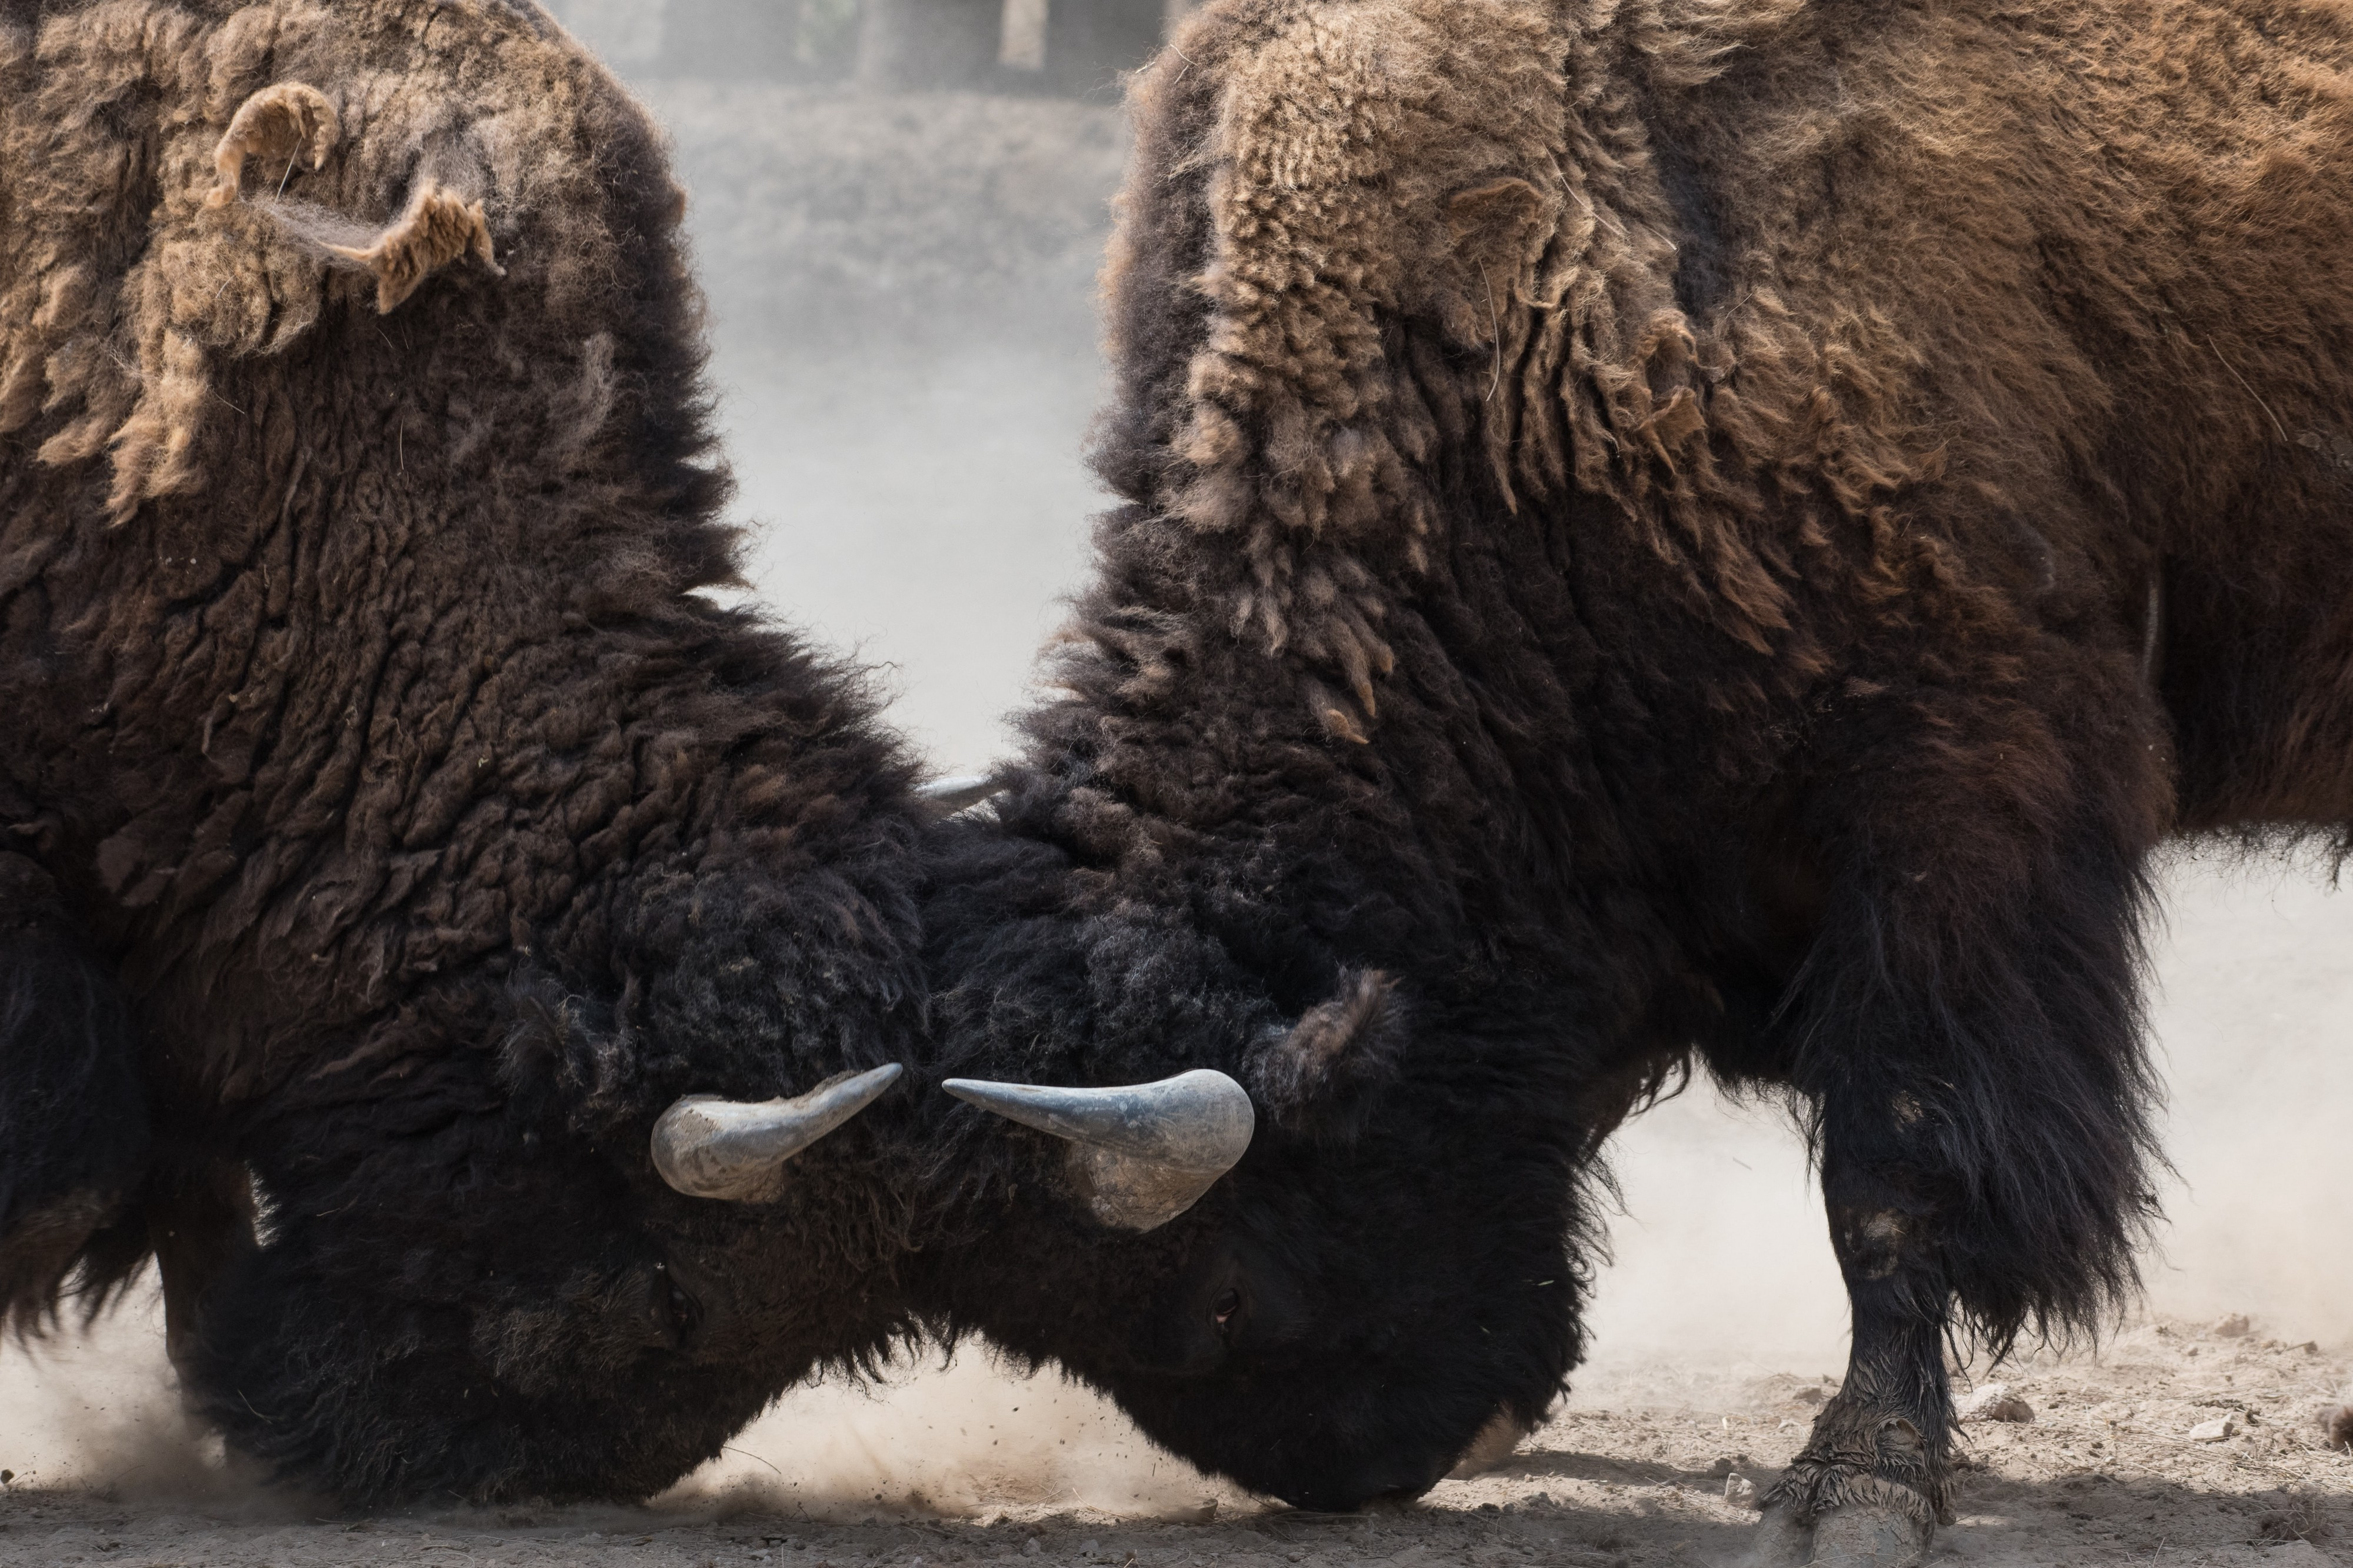 Two bisons butting heads